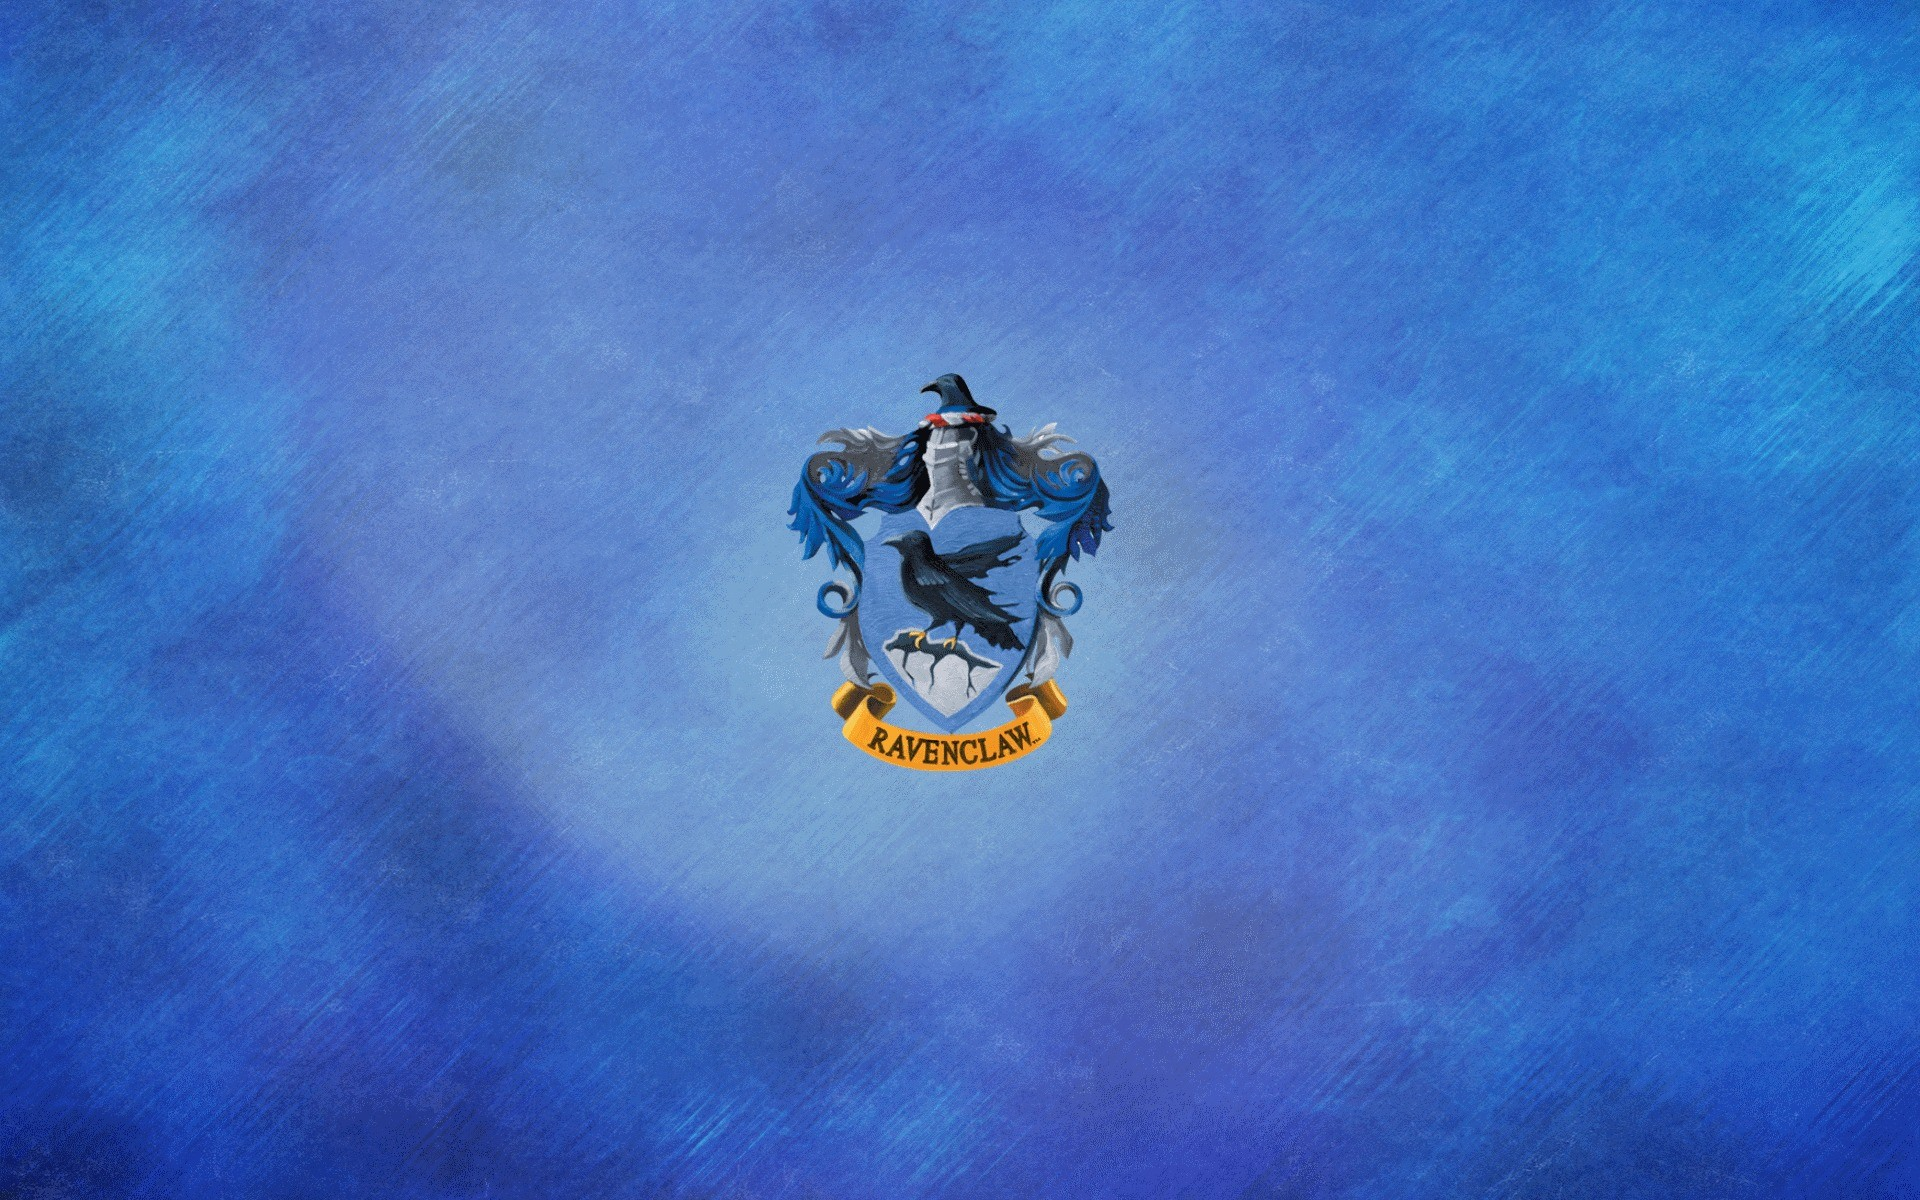 1920x1200 Wallpaper garry potter, ravenclaw, kulturen, wallpaper, 1920x1080 .